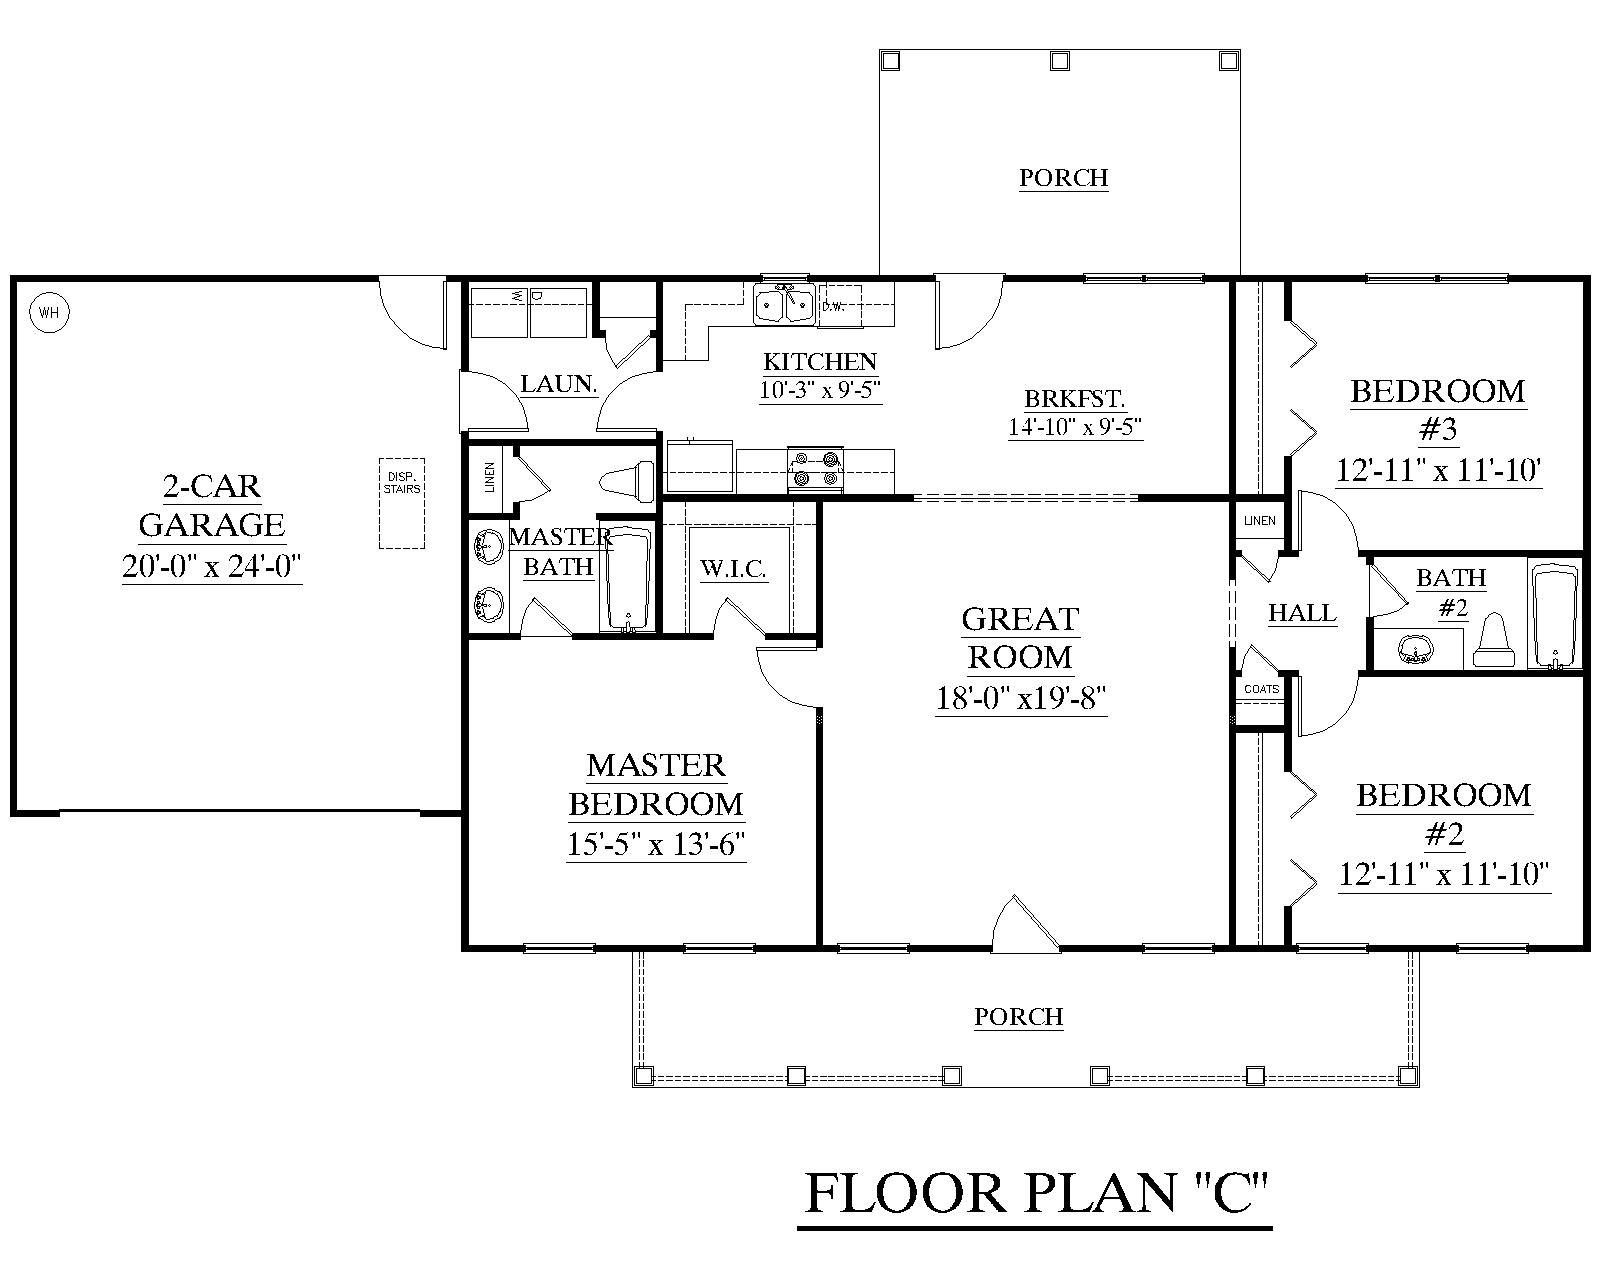 House Plan 1500 C The James C House Plans One Story Bedroom House Plans Barndominium Floor Plans